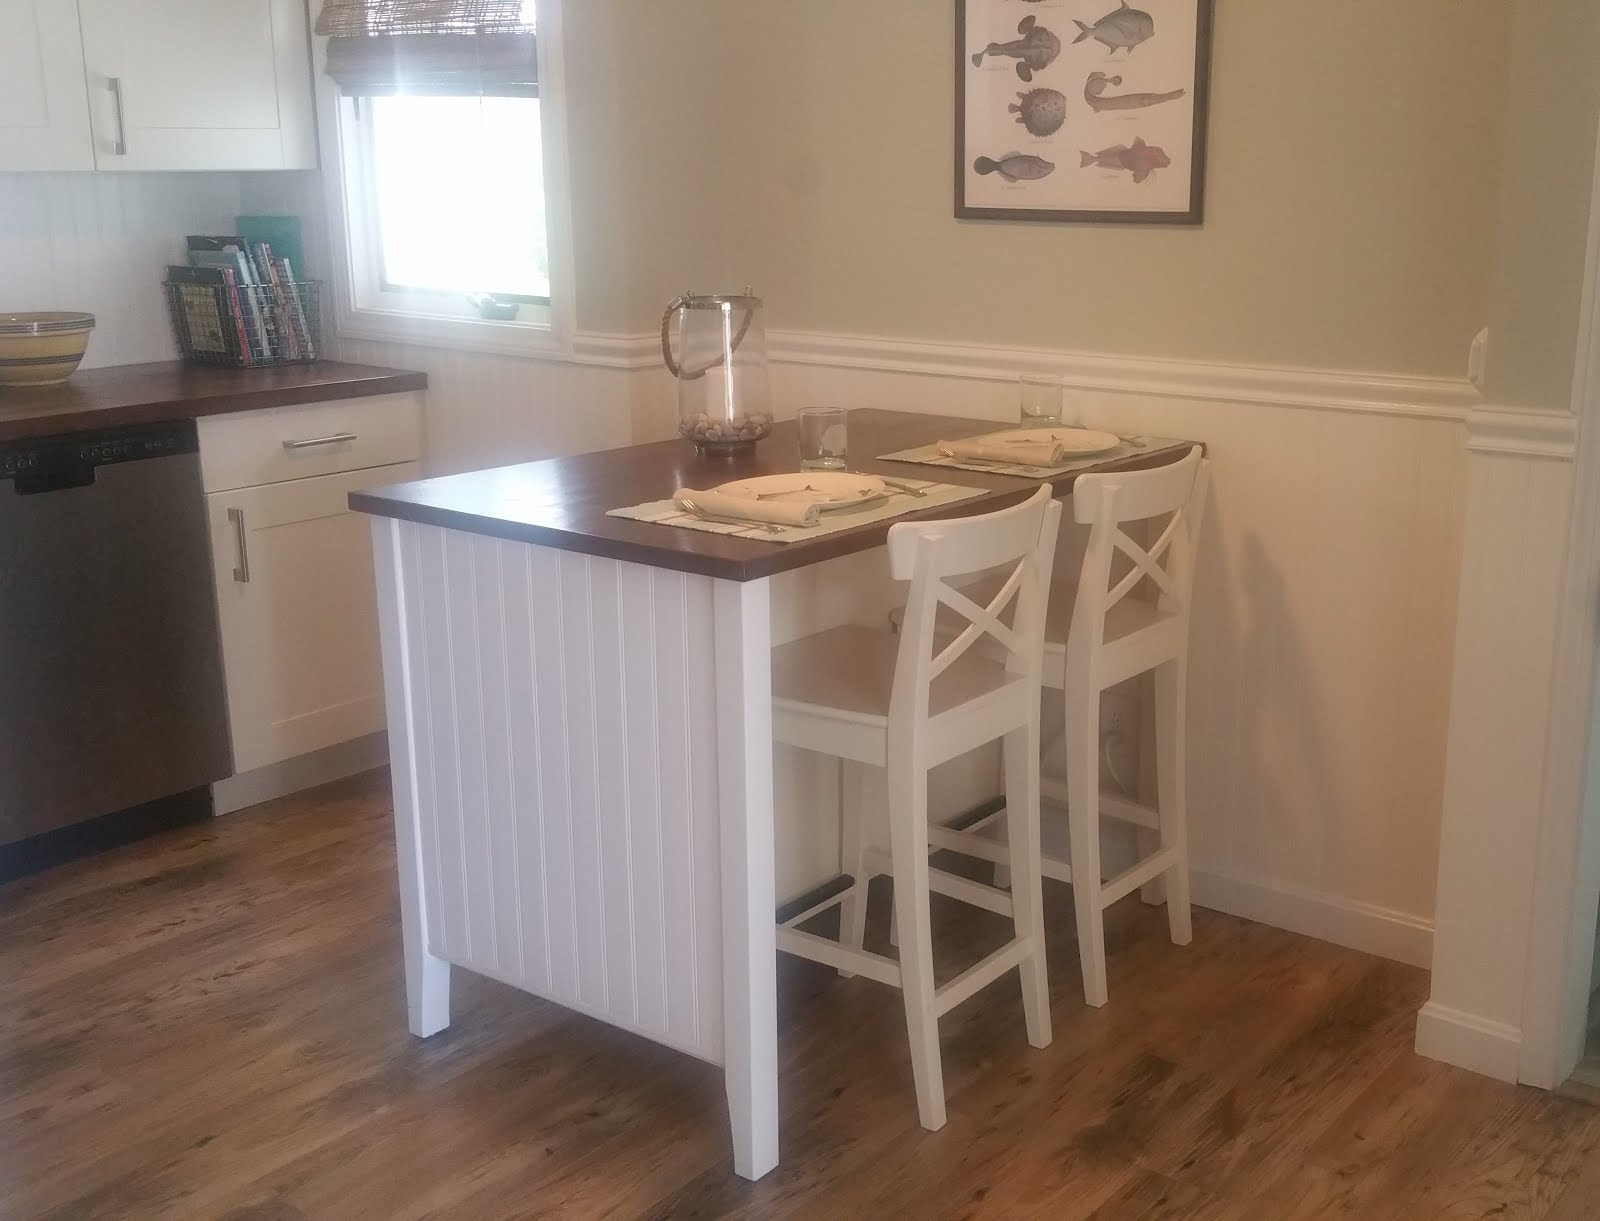 Ikea Kitchen Island With Stools Island Chairs For Kitchen